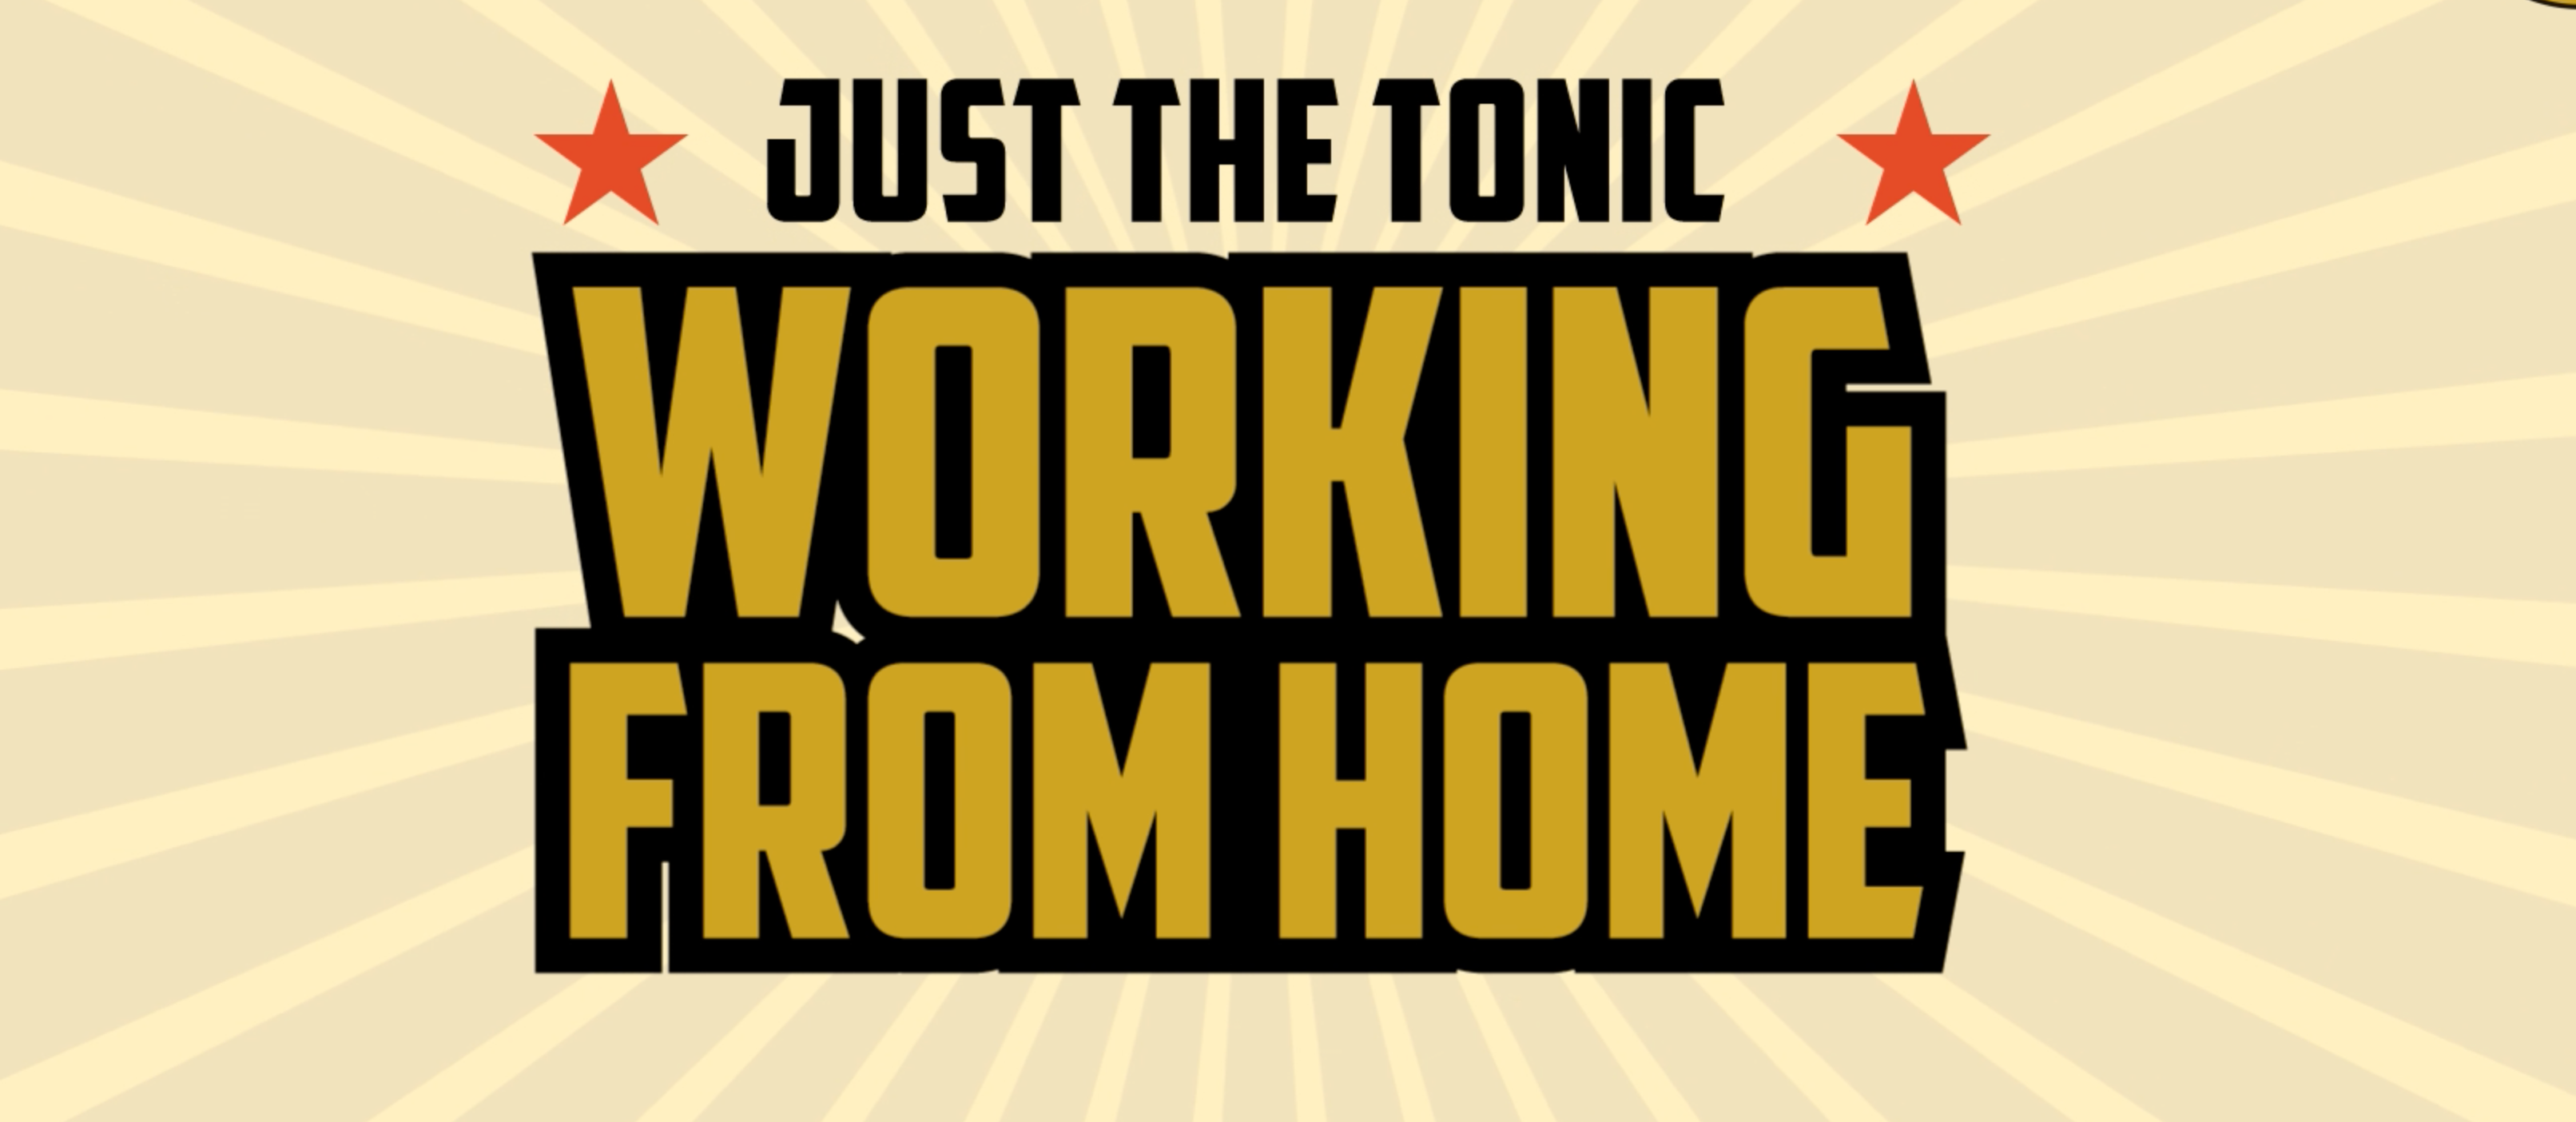 Just the Tonic - Working From Home - Episode 8